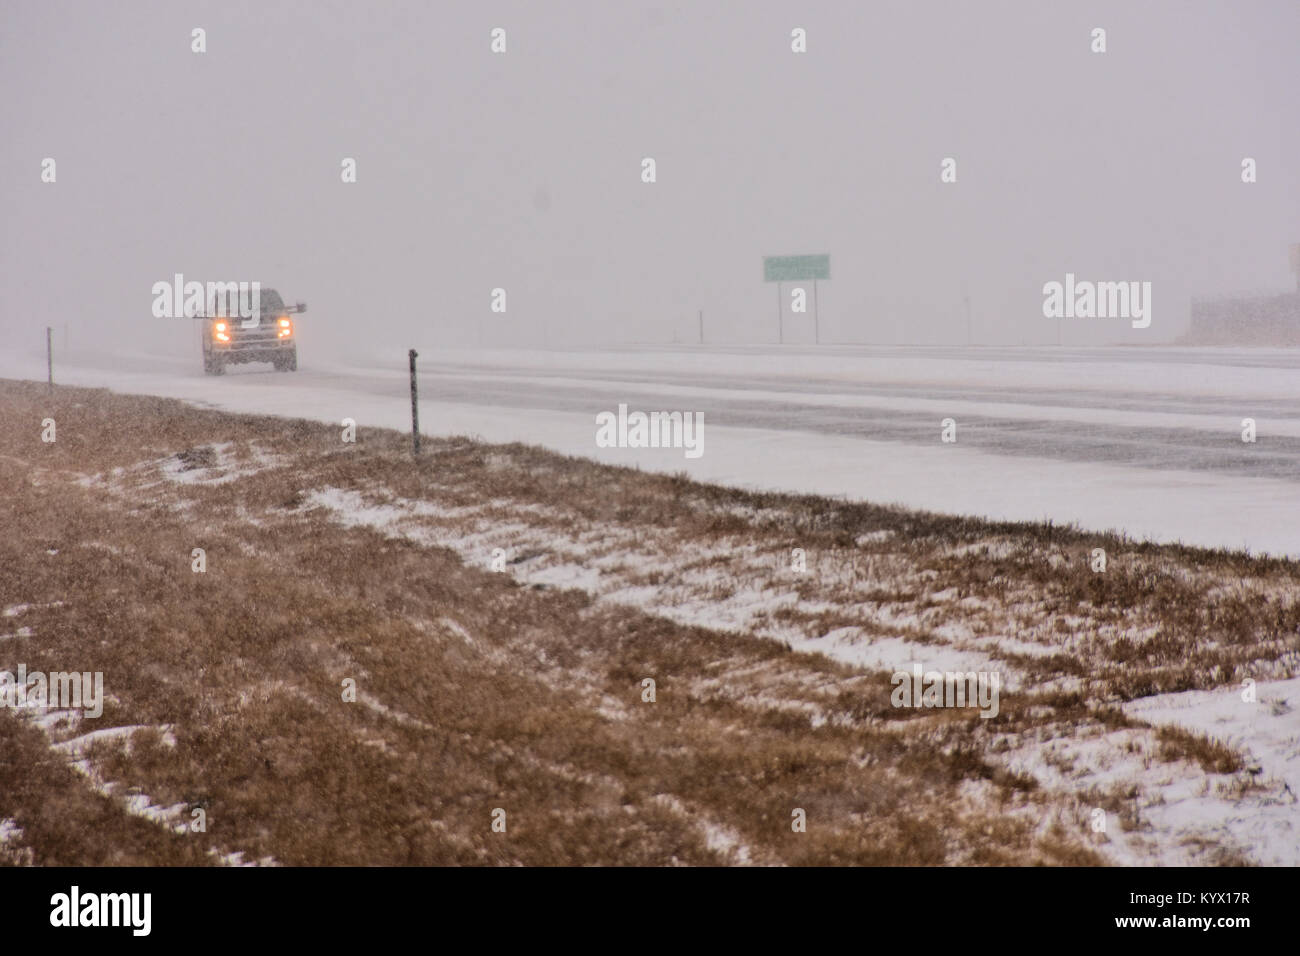 Vehicles traveling on slippery icy road in snow storm. - Stock Image